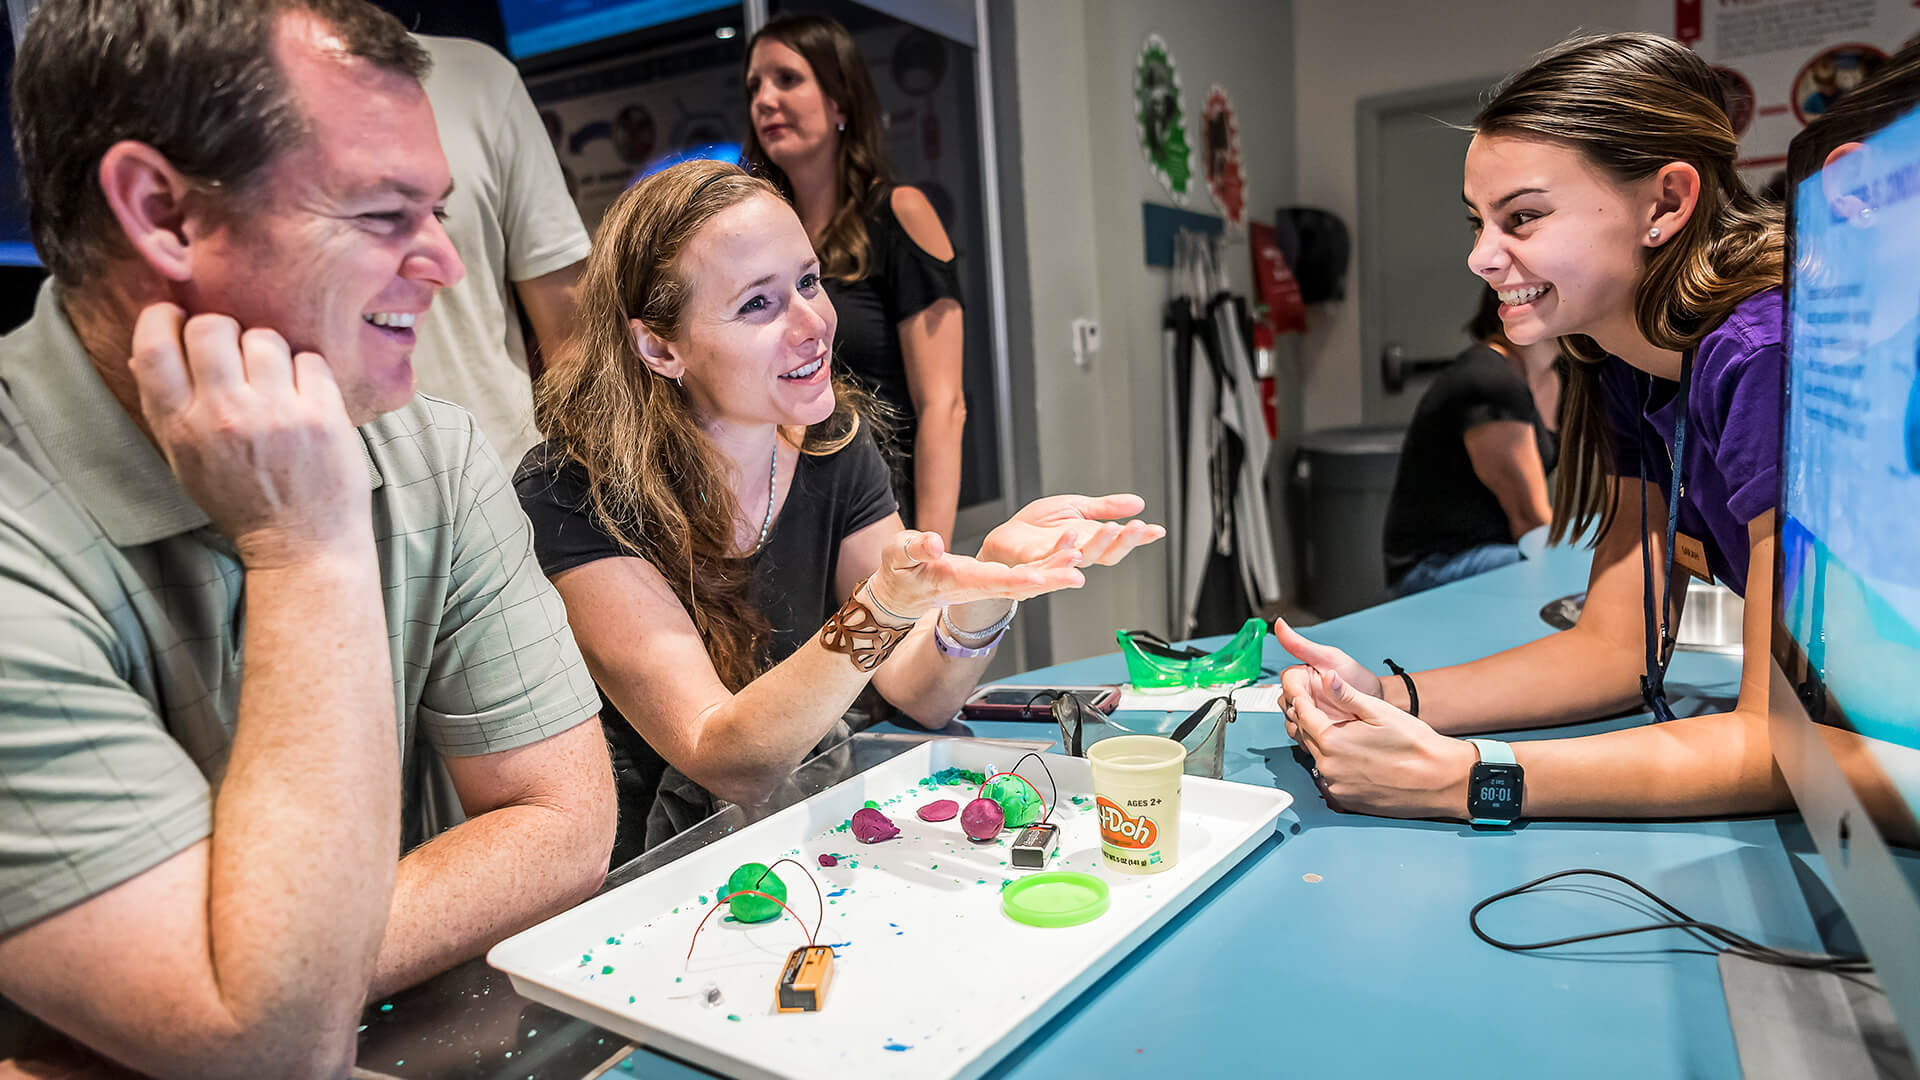 Two adult guests interactive with a staff member during a n electronics lab experiment in Dr. Dare's Lab.